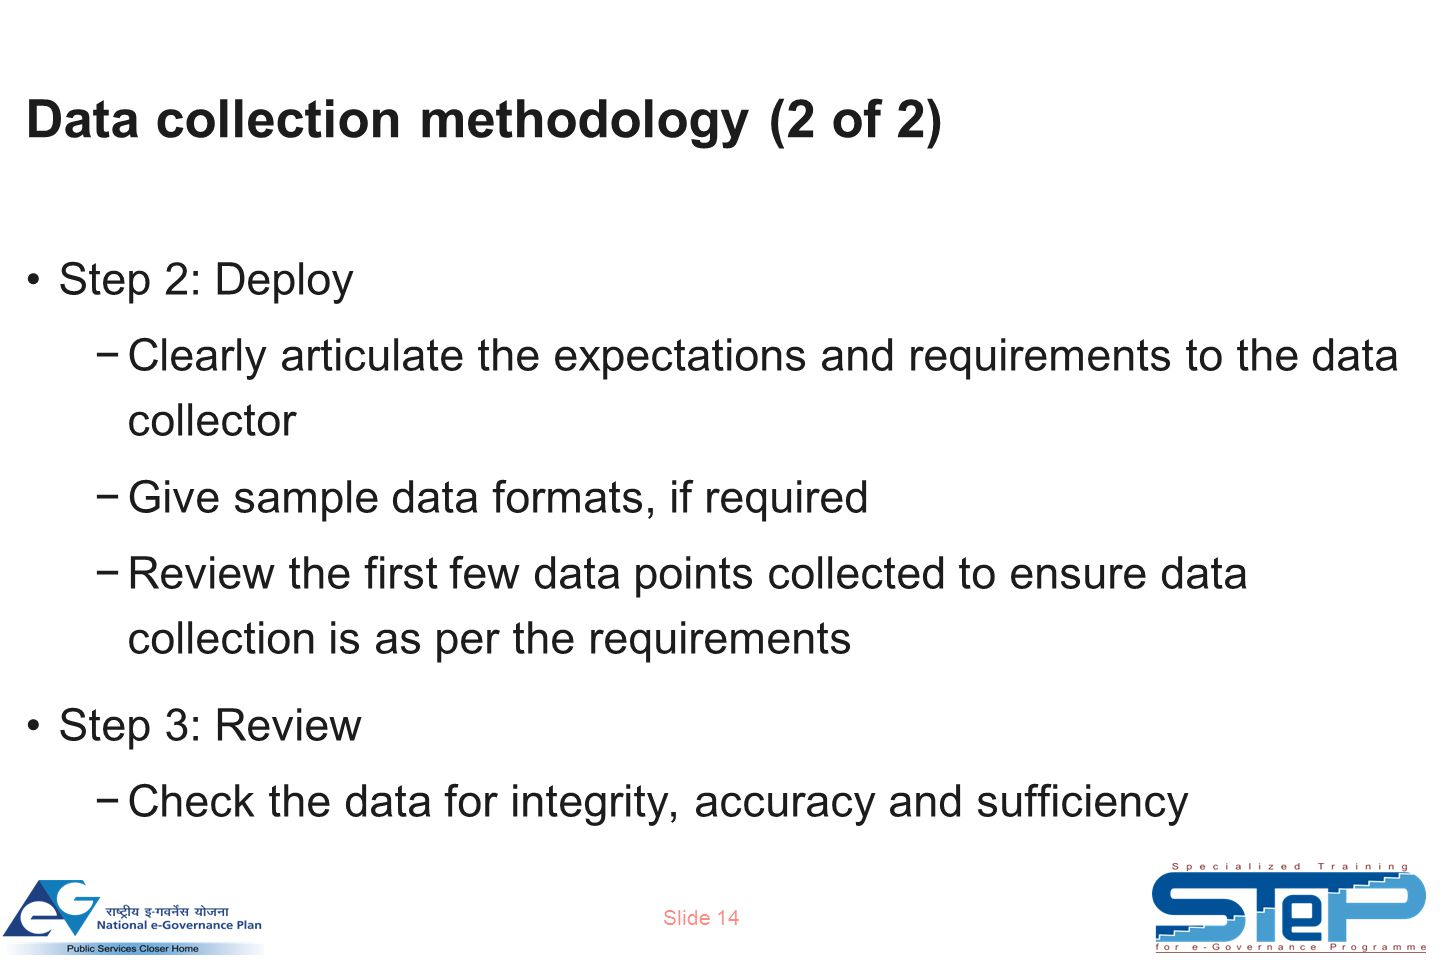 Slide 14 Data collection methodology (2 of 2) Step 2: Deploy −Clearly articulate the expectations and requirements to the data collector −Give sample data formats, if required −Review the first few data points collected to ensure data collection is as per the requirements Step 3: Review −Check the data for integrity, accuracy and sufficiency